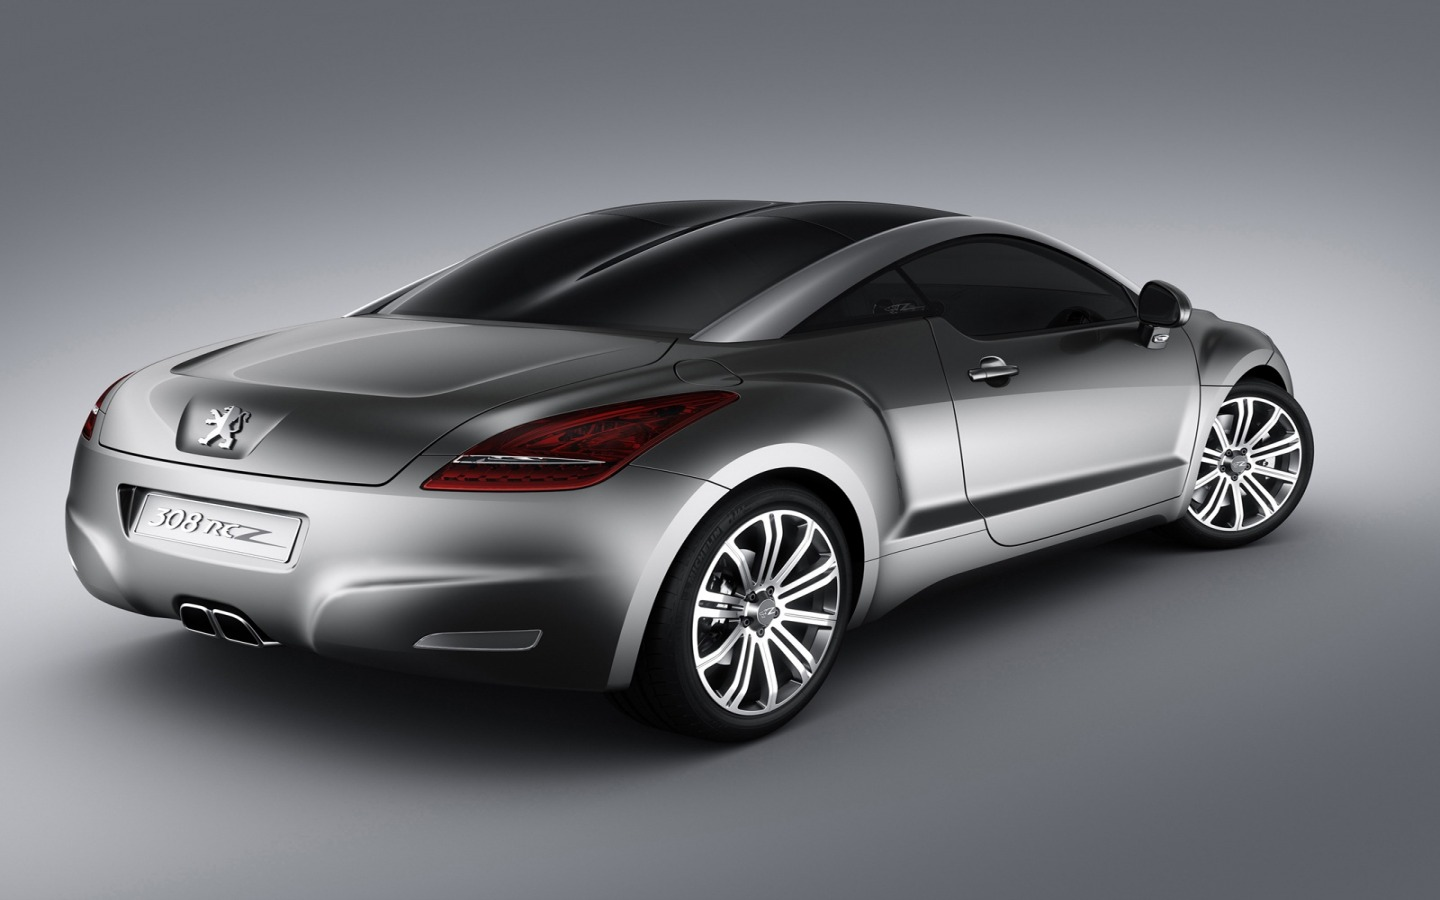 Peugeot Rcz Rear And Side Wallpaper Peugeot Cars Wallpapers In